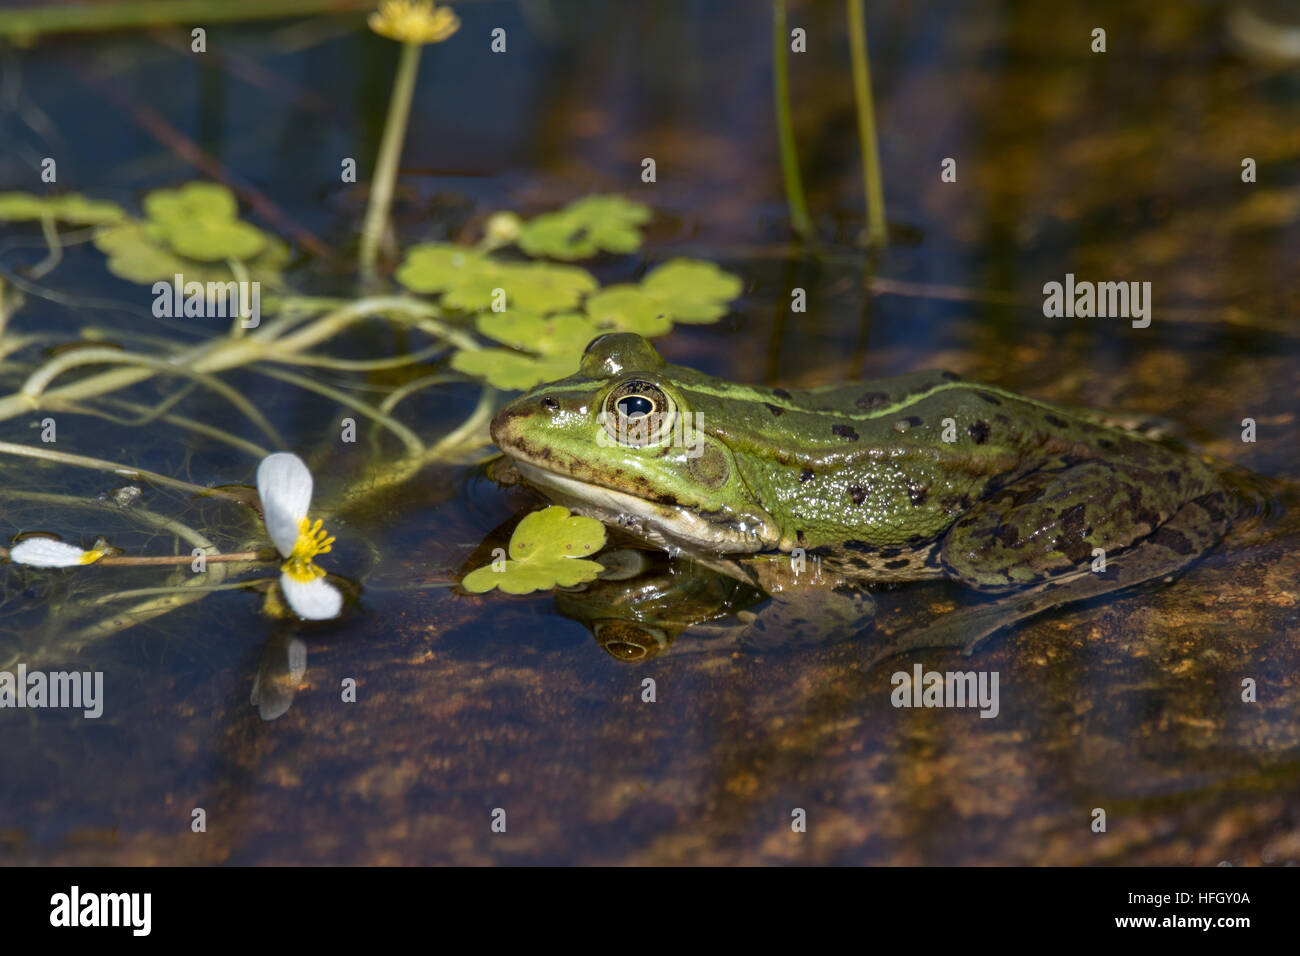 Green frog in the pond, Rana Esculenta, edible frog, is sitting in water between brown and green straws. - Stock Image